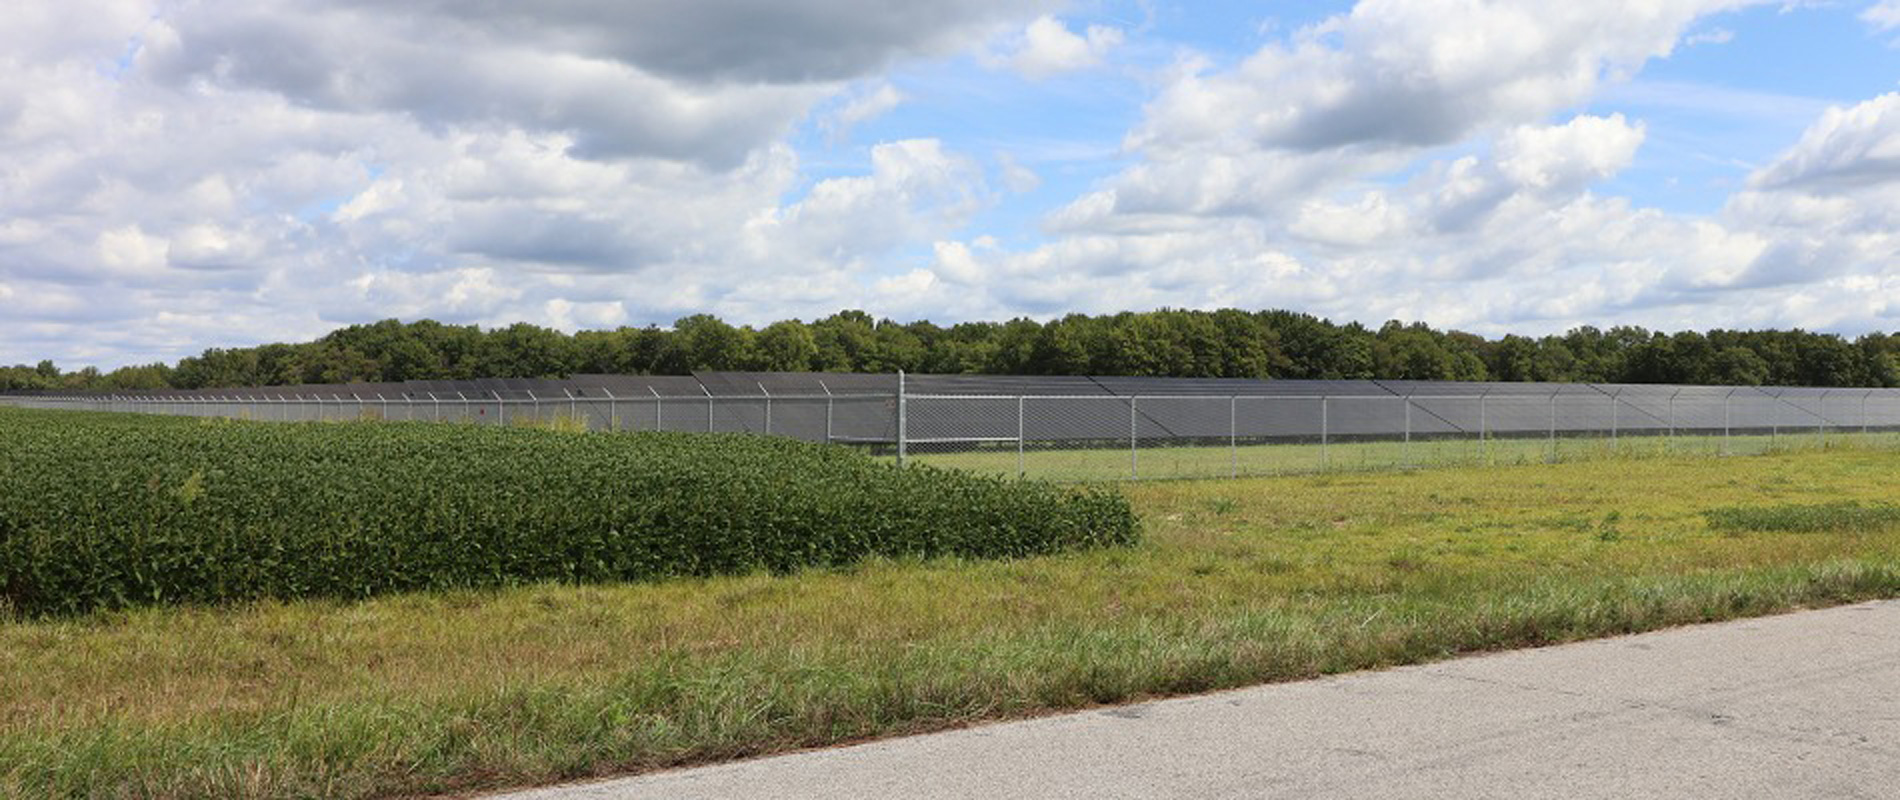 Street view of a solar farm behind a fence with grass.